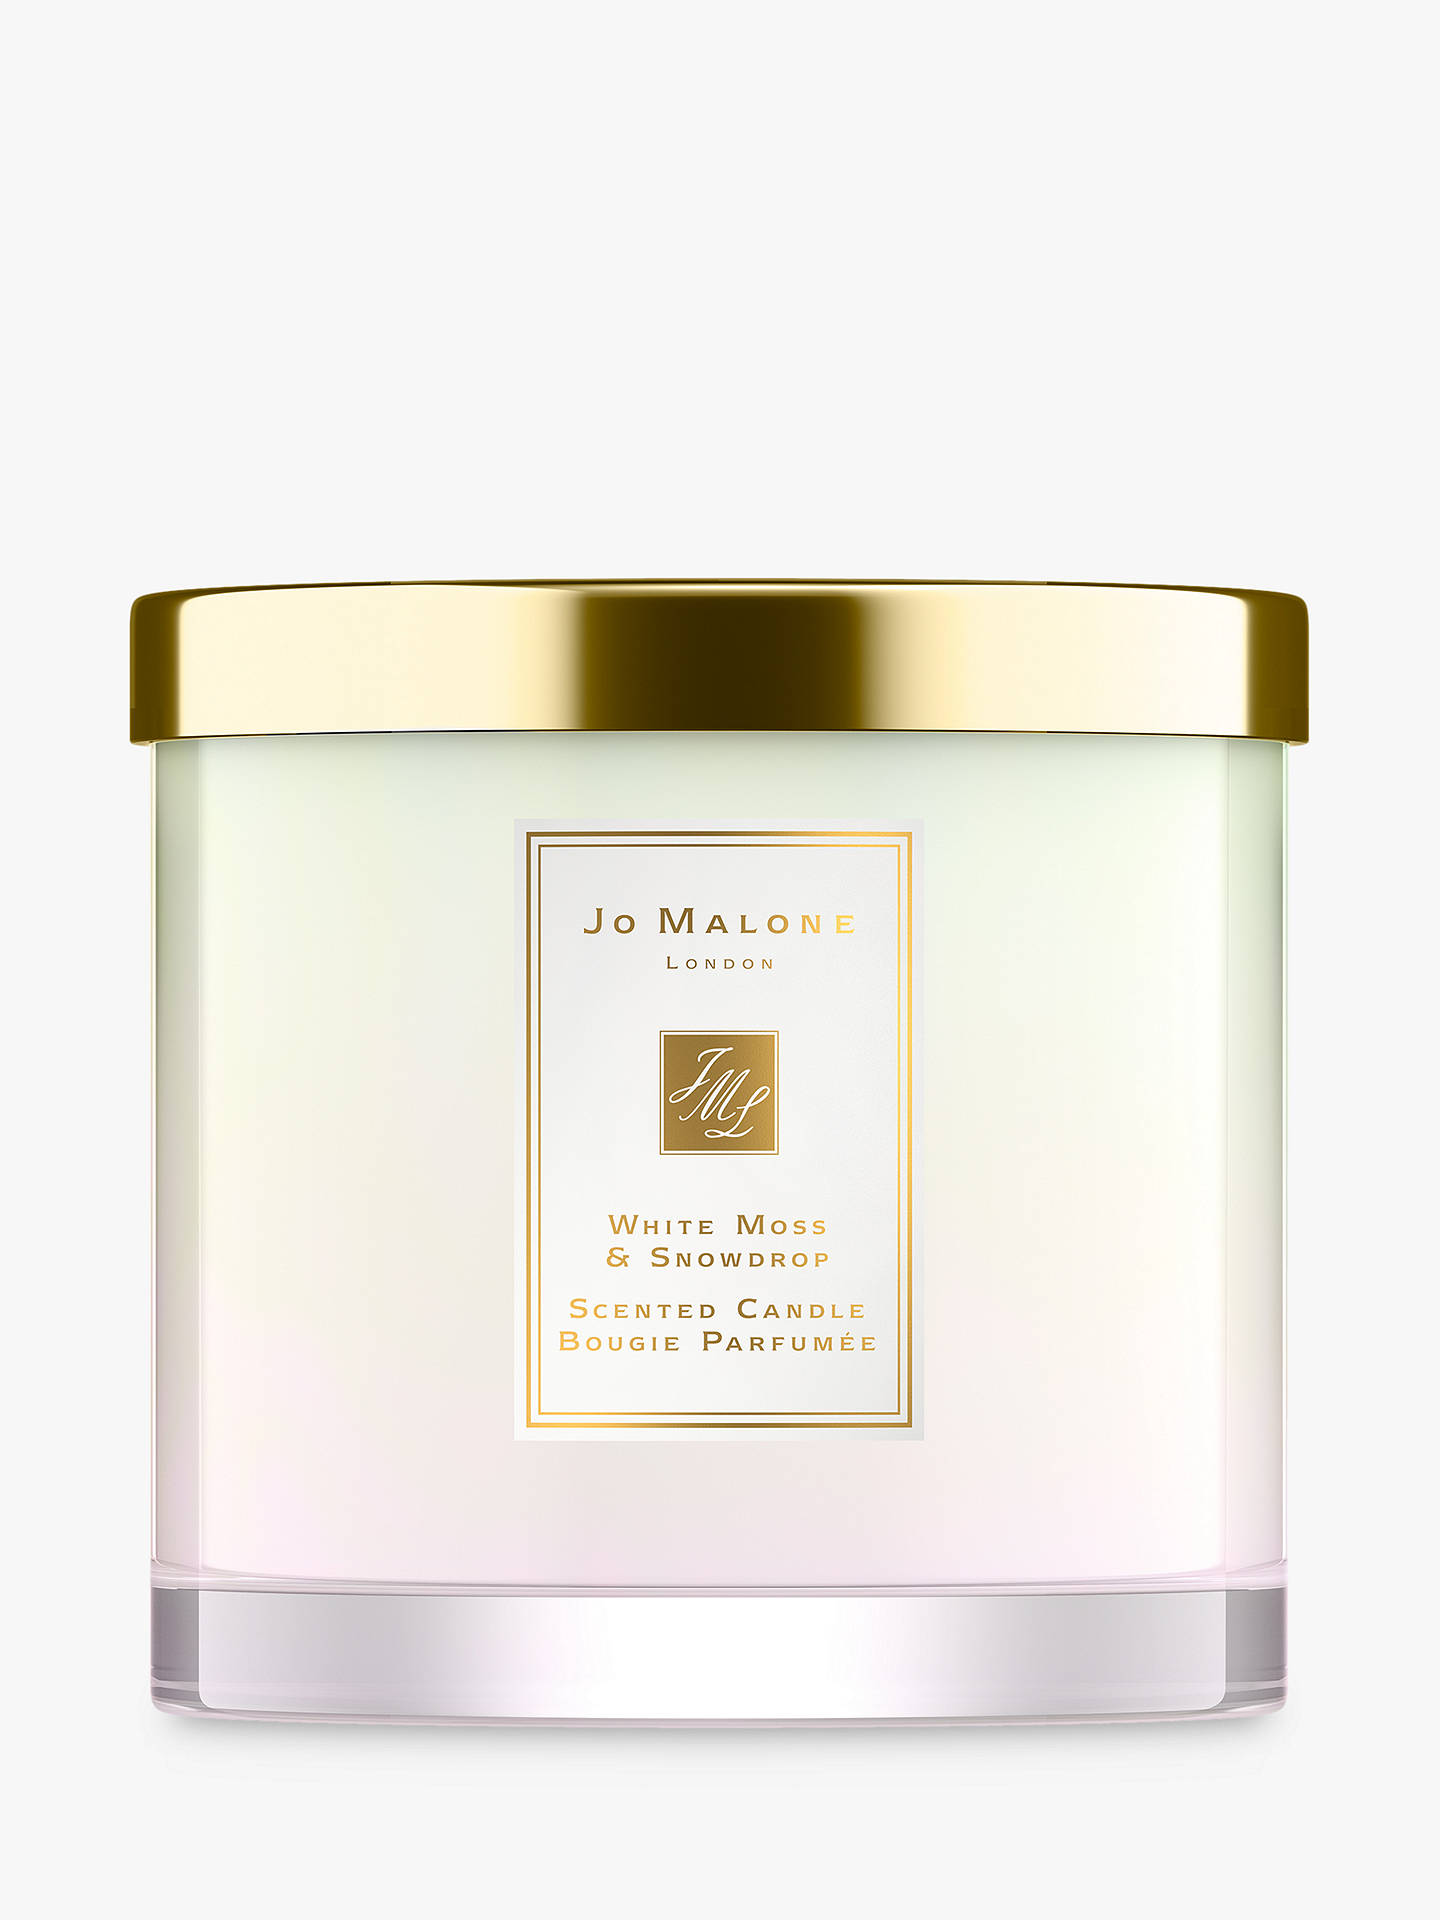 Jo Malone Limited Edition 3 wick candle